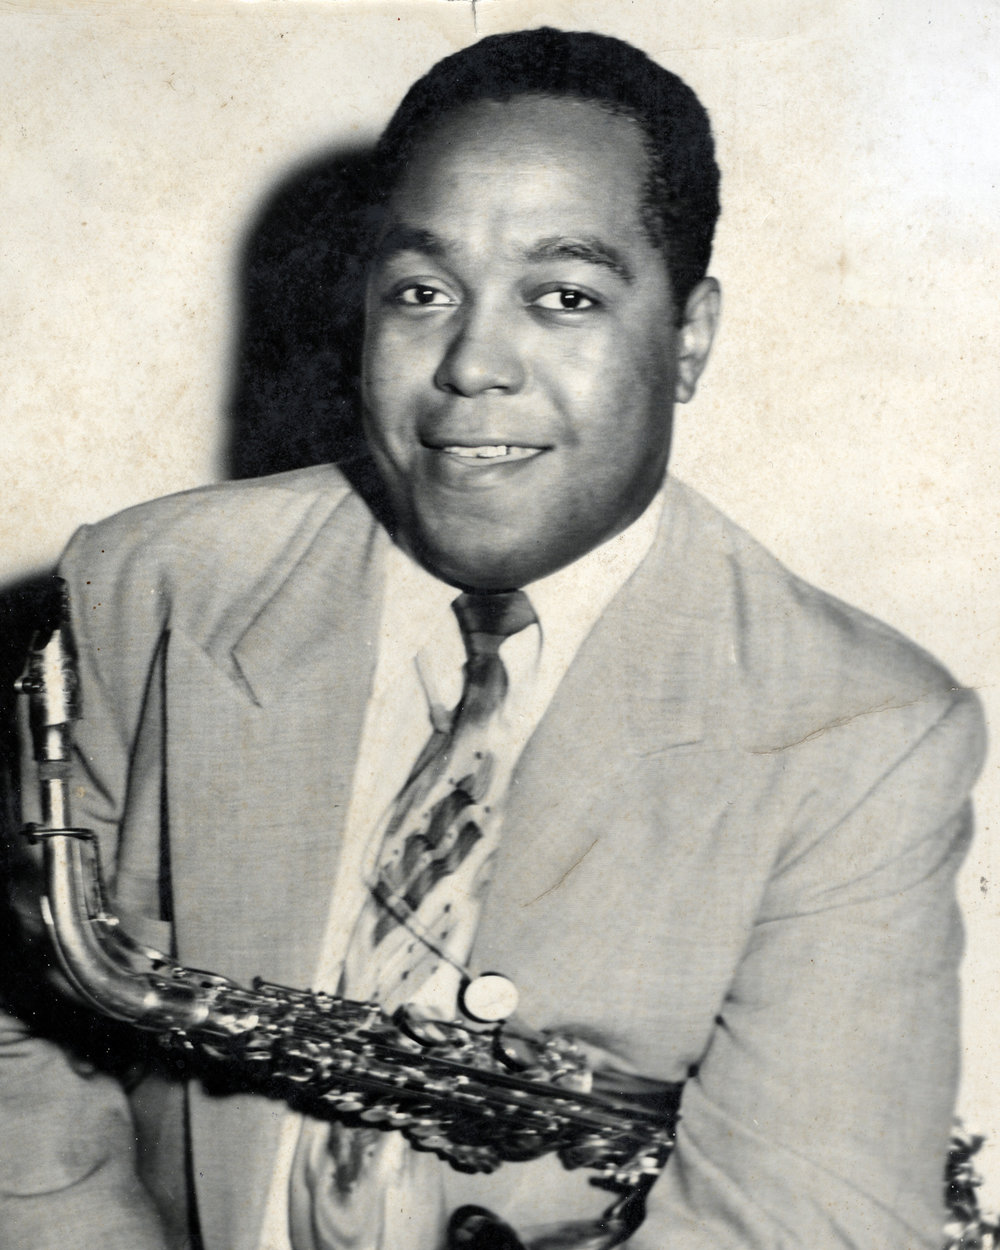 Copy of Charlie Parker